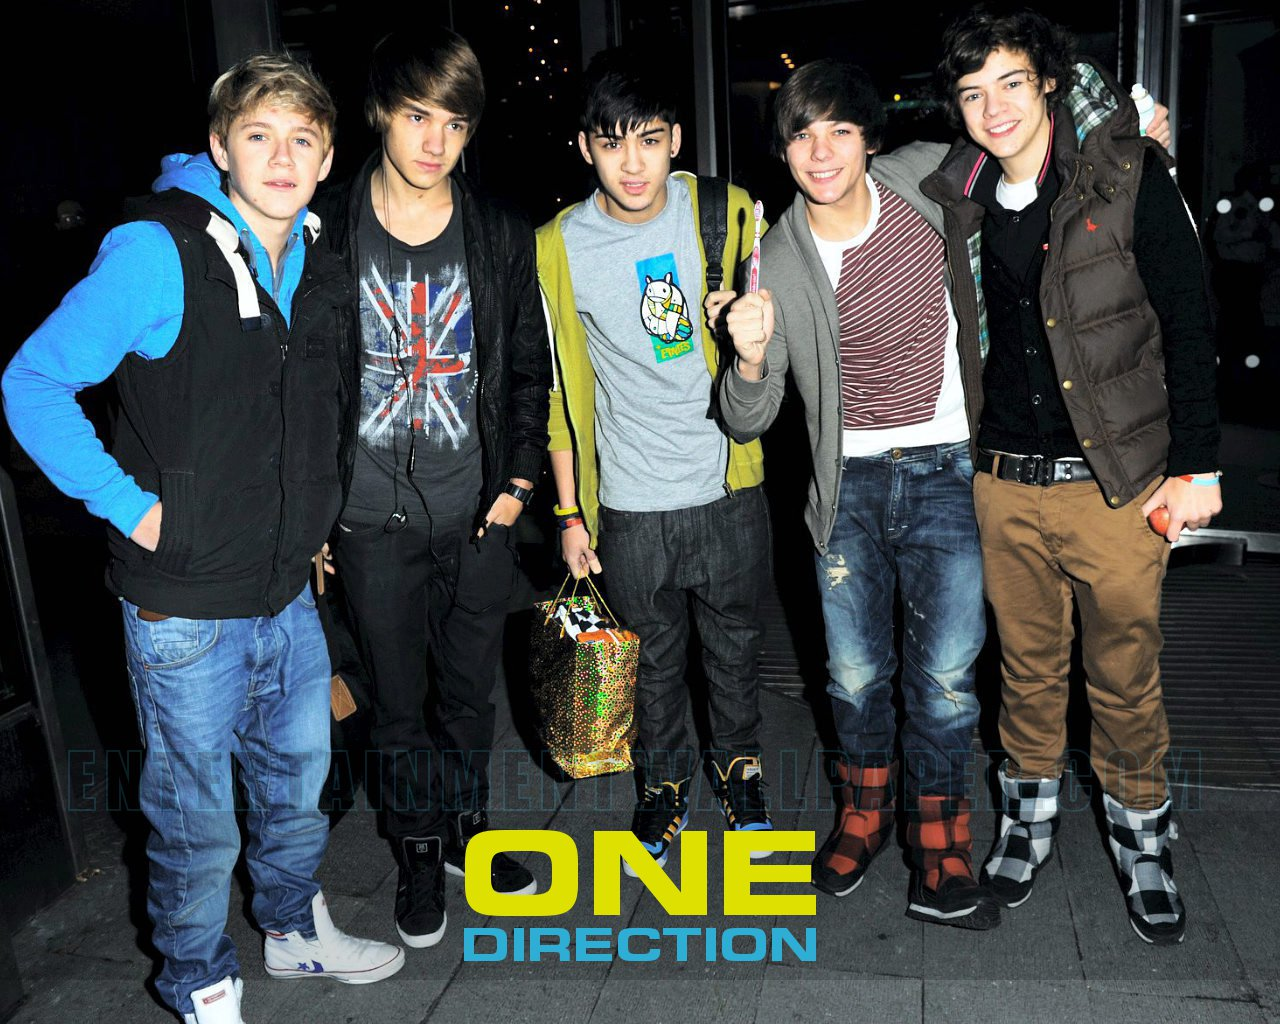 http://2.bp.blogspot.com/-j9mbFZHzB0A/Tt3amWjKh4I/AAAAAAAAAr8/a8VOw3zG4RA/s1600/one+direction+wallpaper-freepspthemeswallpapers.blogspot.com-one-direction03.jpg